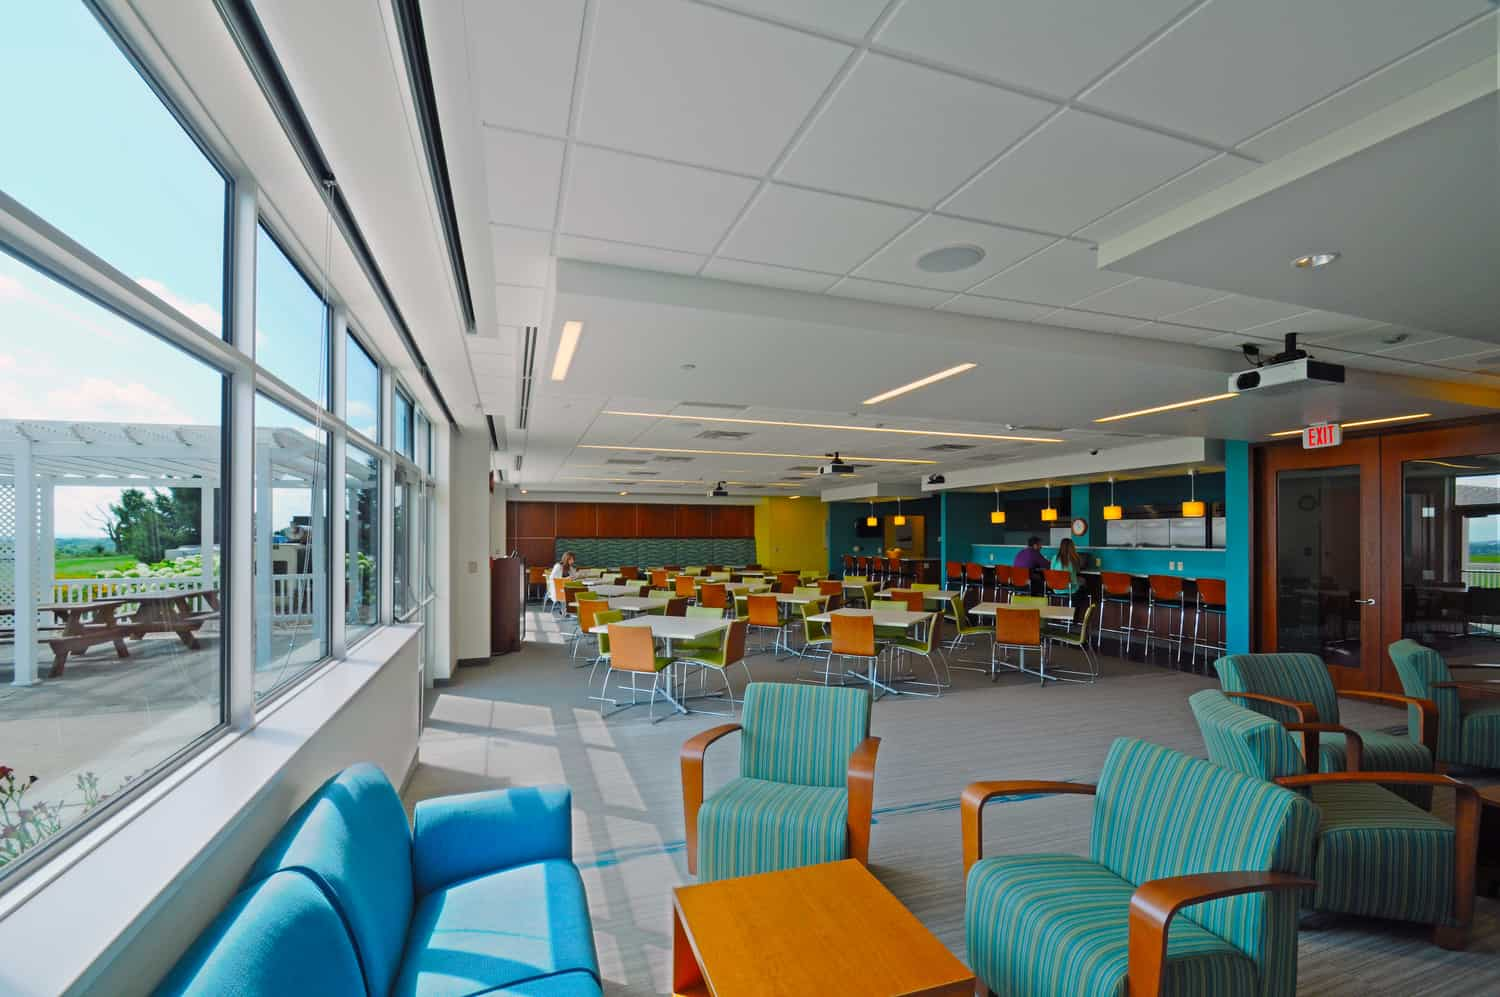 SECURITY HEALTH PLAN OF WISCONSIN CORPORATE COMMONS RENOVATION